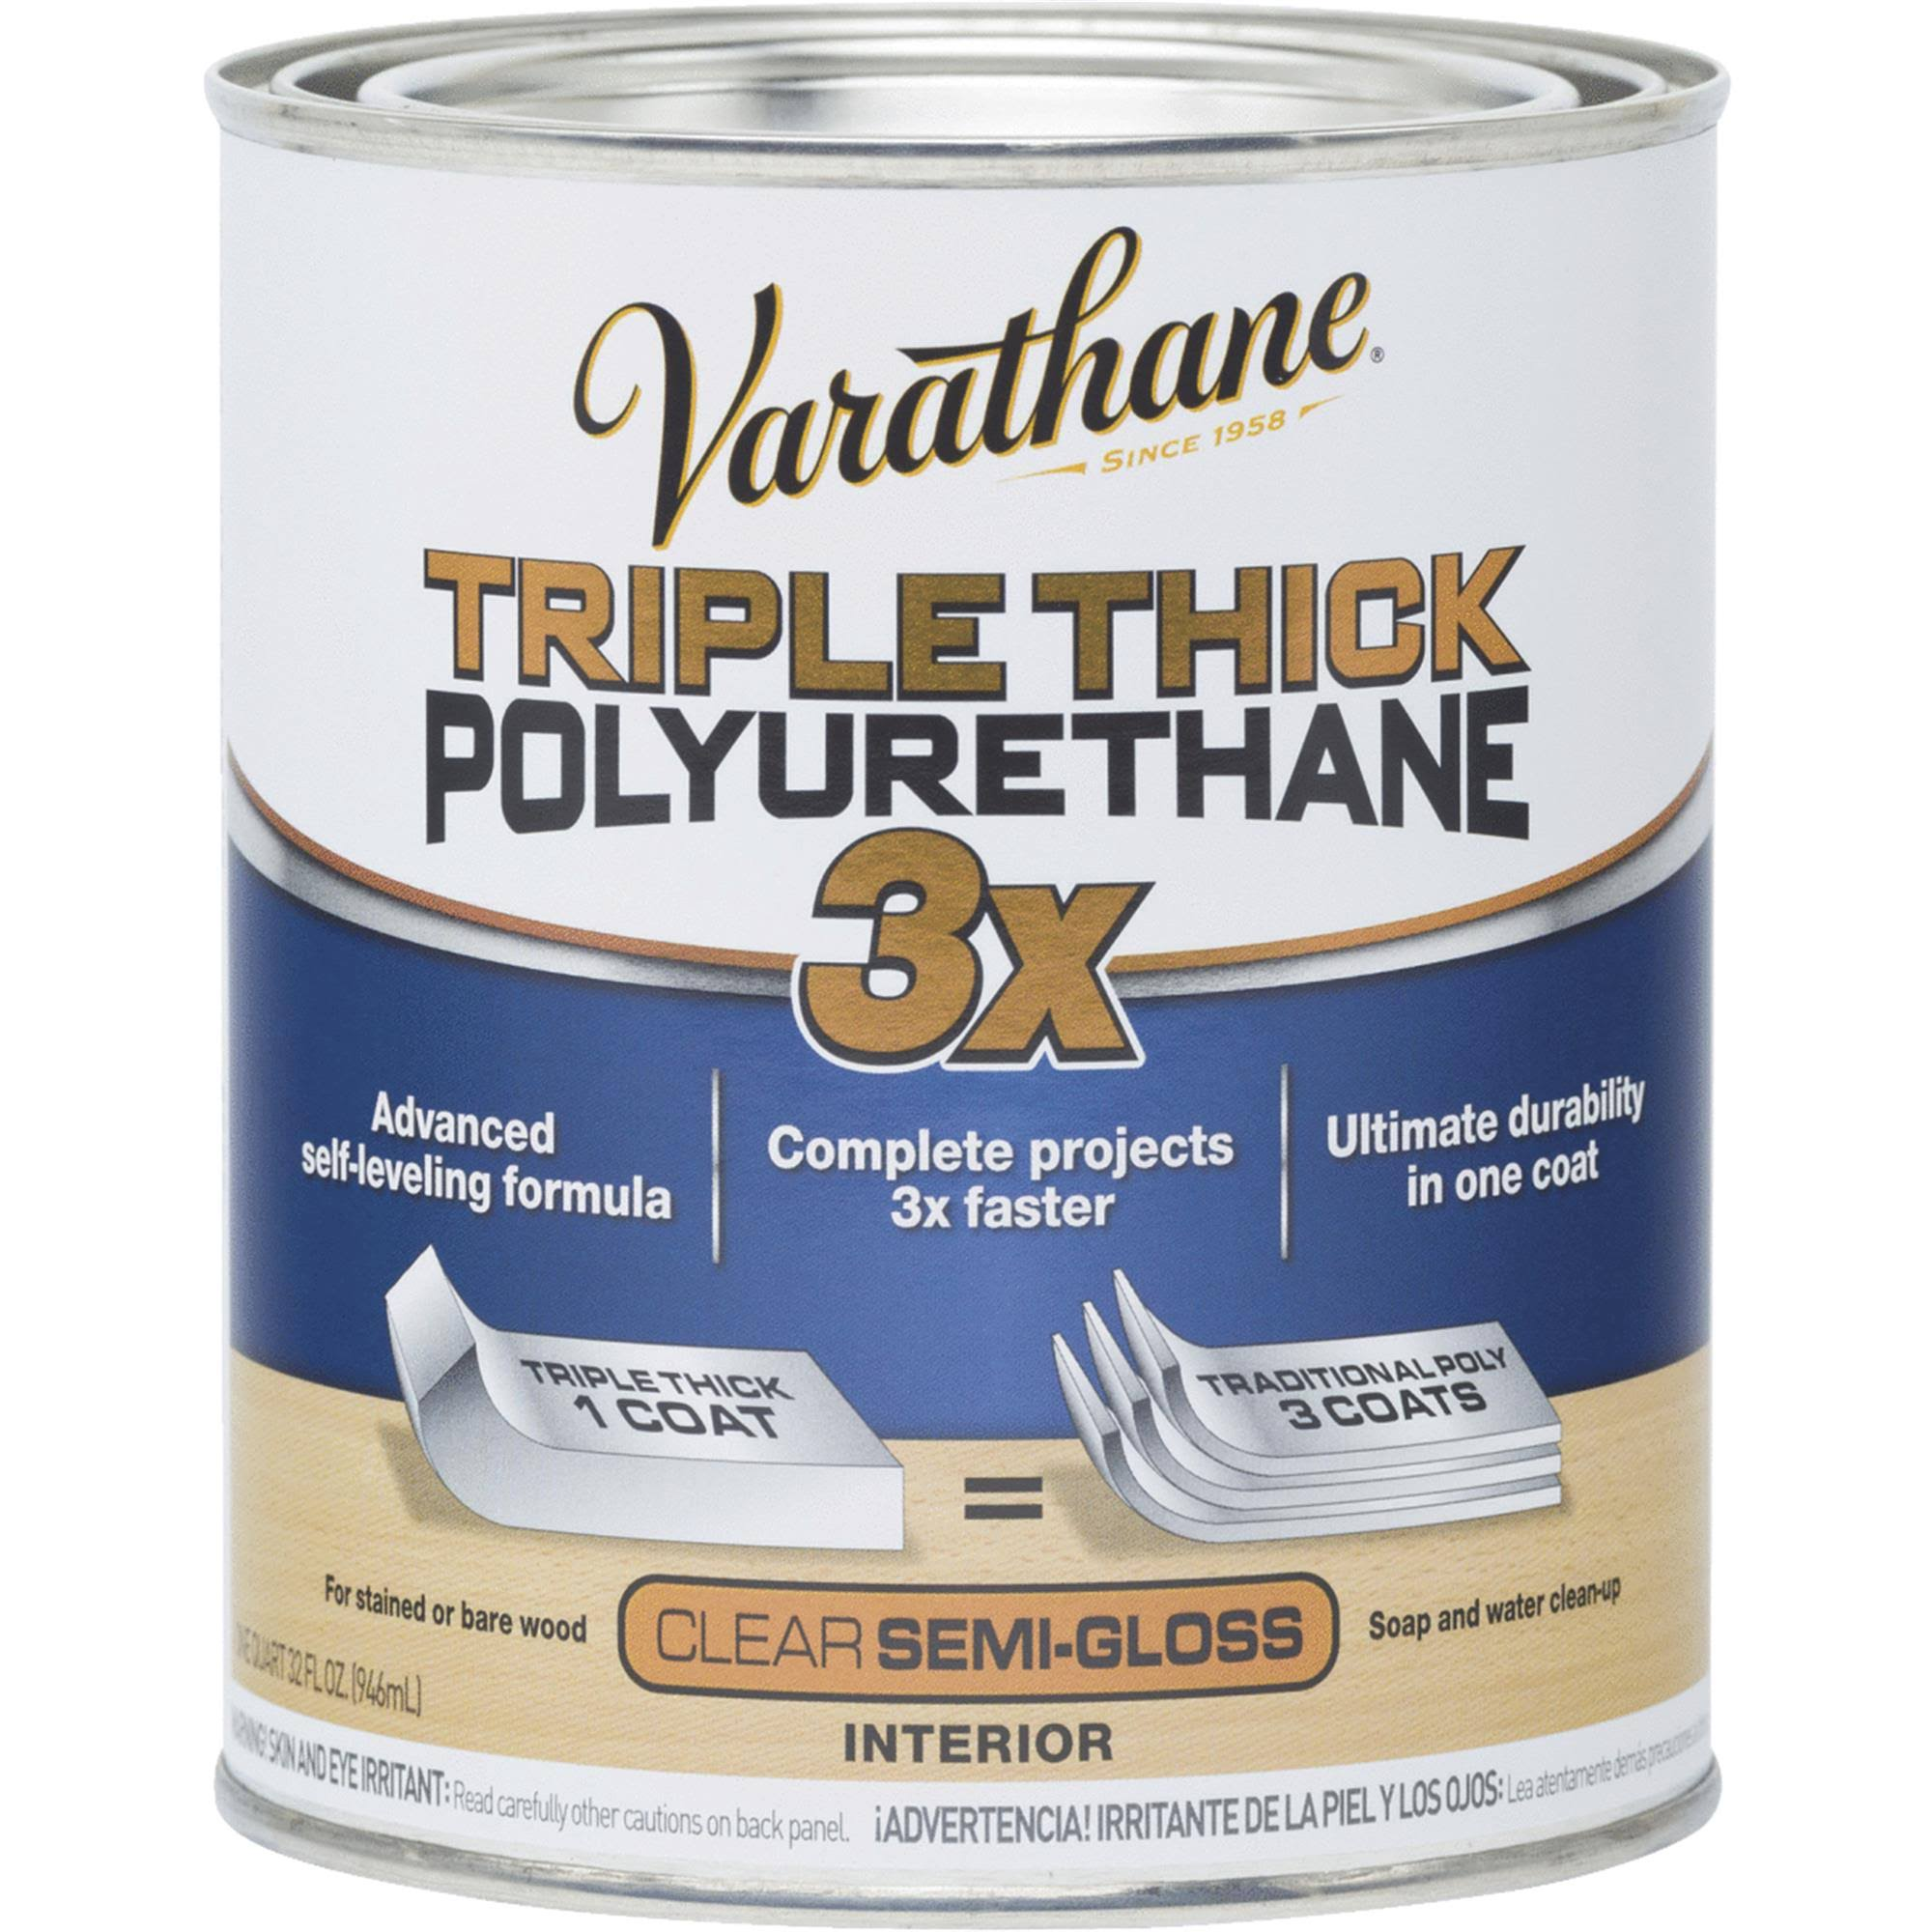 Rust-Oleum Varathane Triple Thick Polyurethane - Clear Semi-Gloss